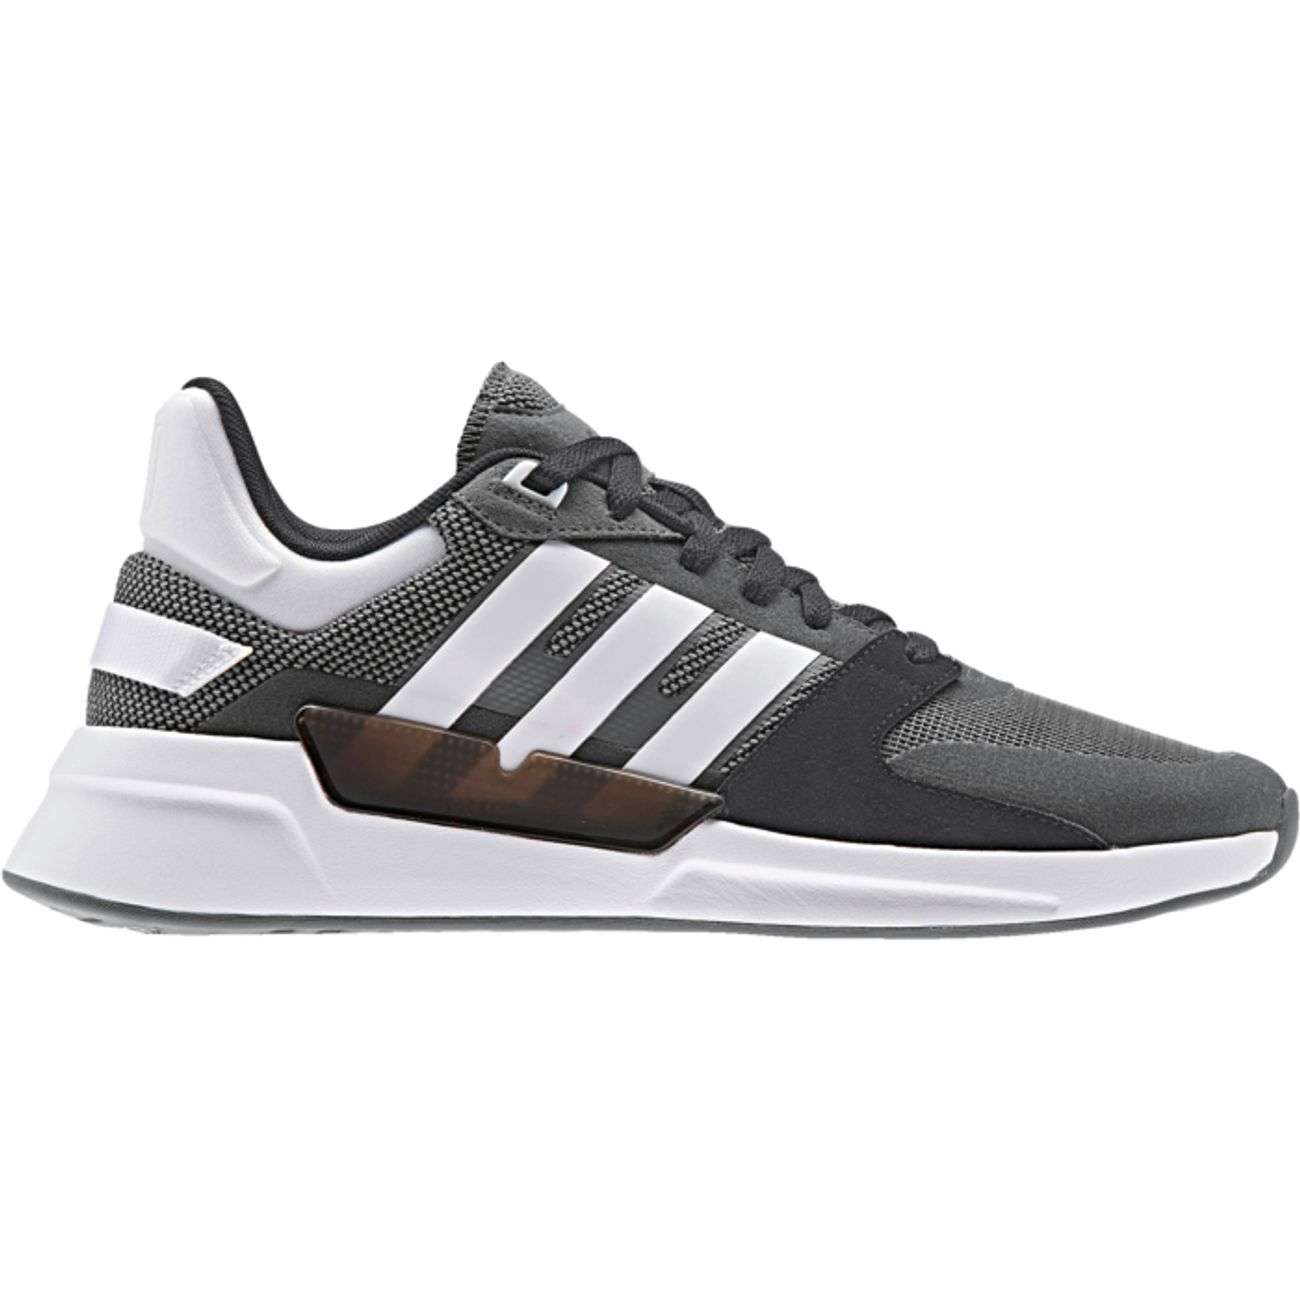 CHAUSSURES BASSES Loisirs homme ADIDAS RUN90S